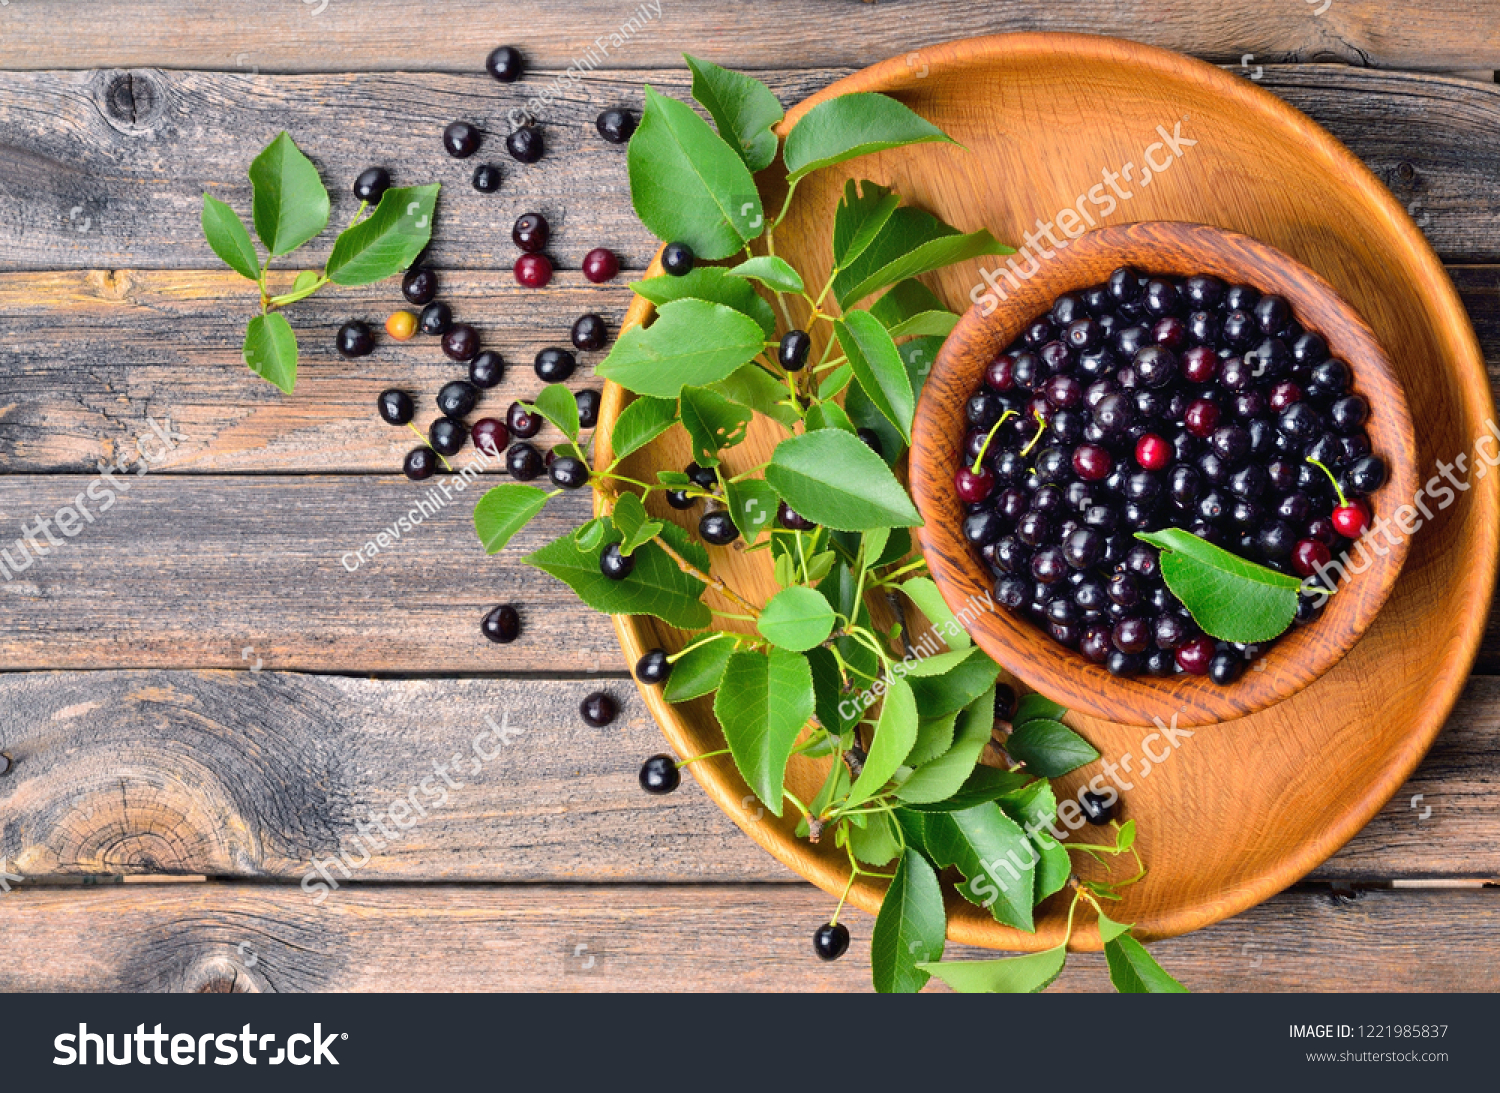 Bowl Fresh Superfood Maqui Berry On Stock Photo Edit Now 1221985837